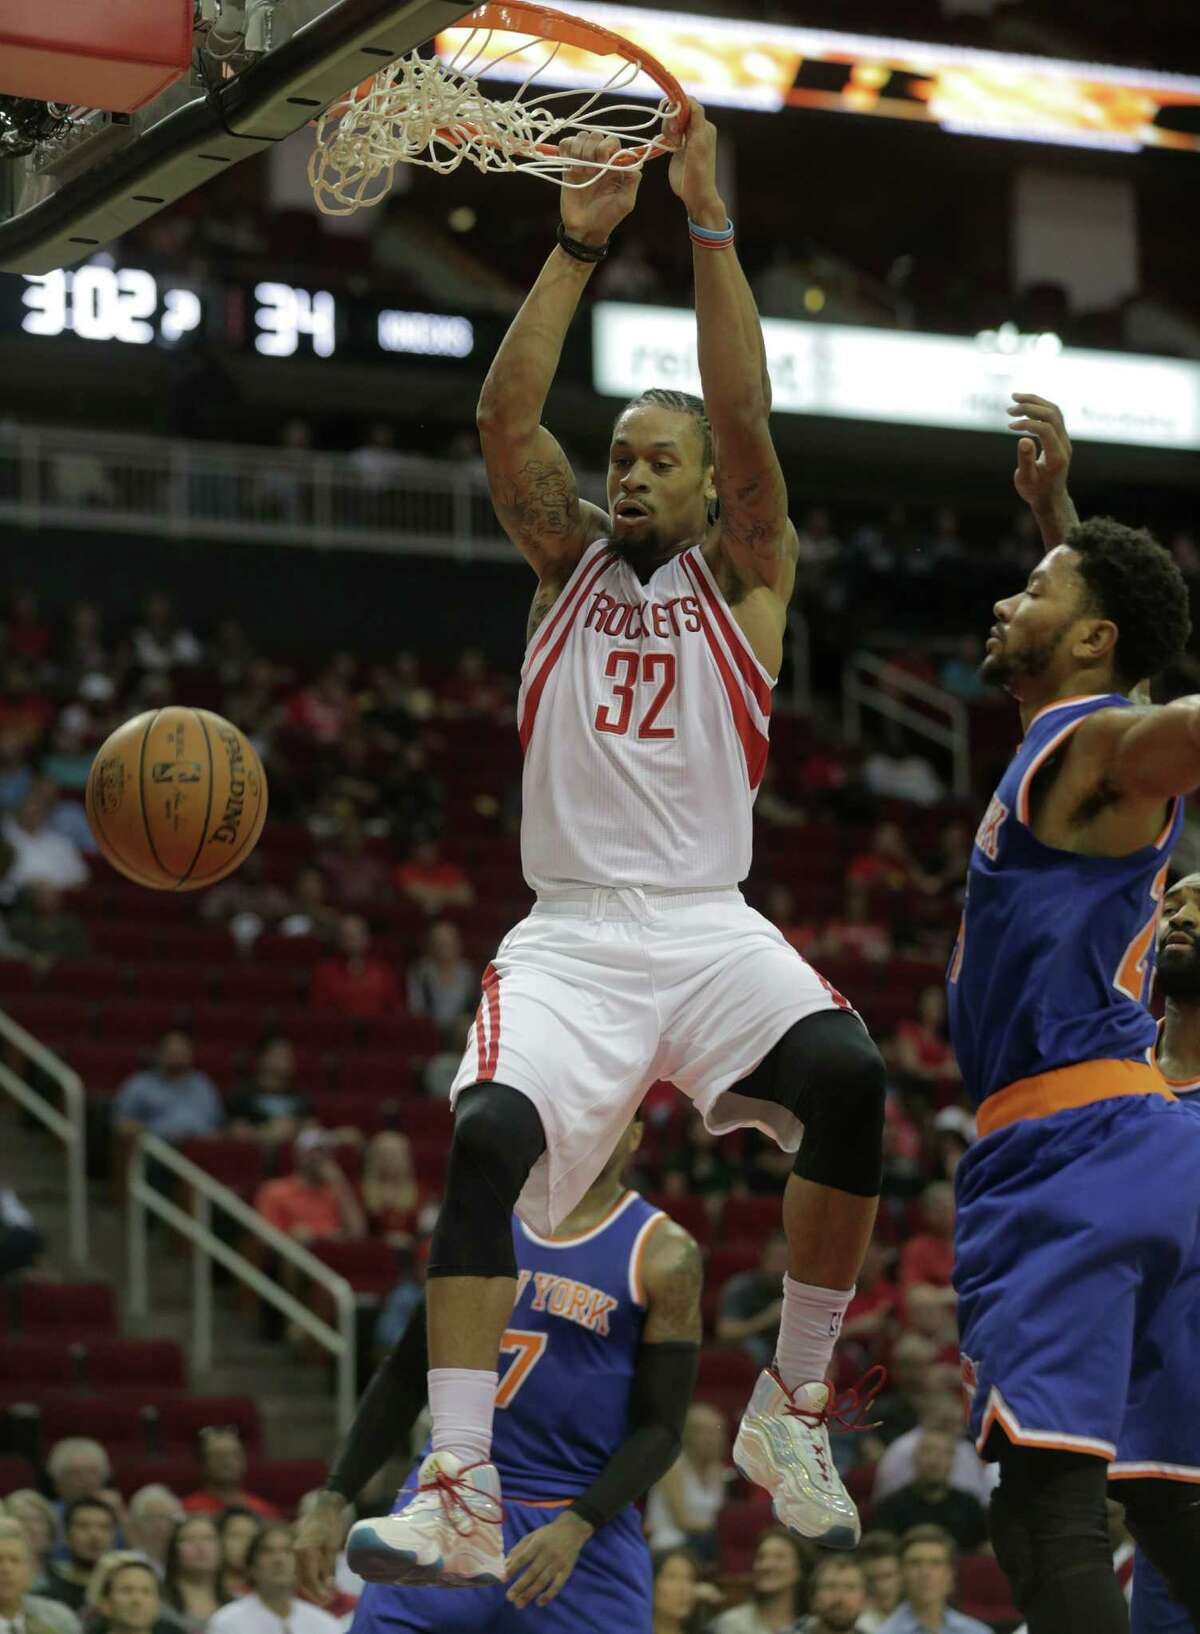 Houston Rockets guard K.J. McDaniels (32) dunks the ball against the New York Knicks at the Toyota Center on Tuesday, Oct. 4, 2016, in Houston.